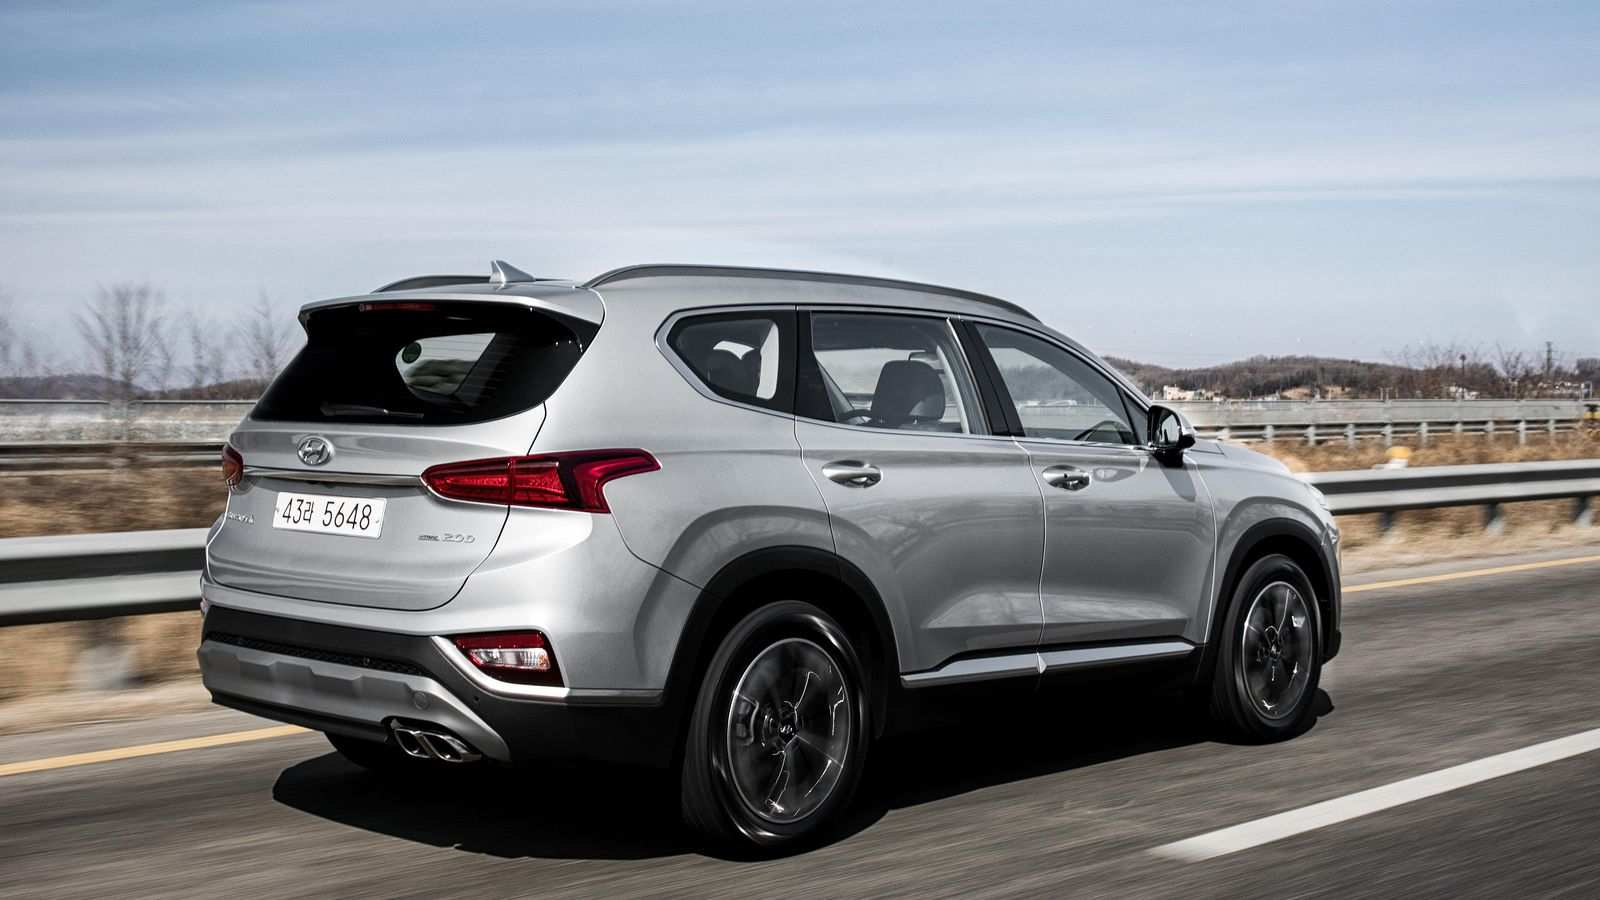 67 Concept of 2019 Hyundai Santa Fe Spy Shoot with 2019 Hyundai Santa Fe